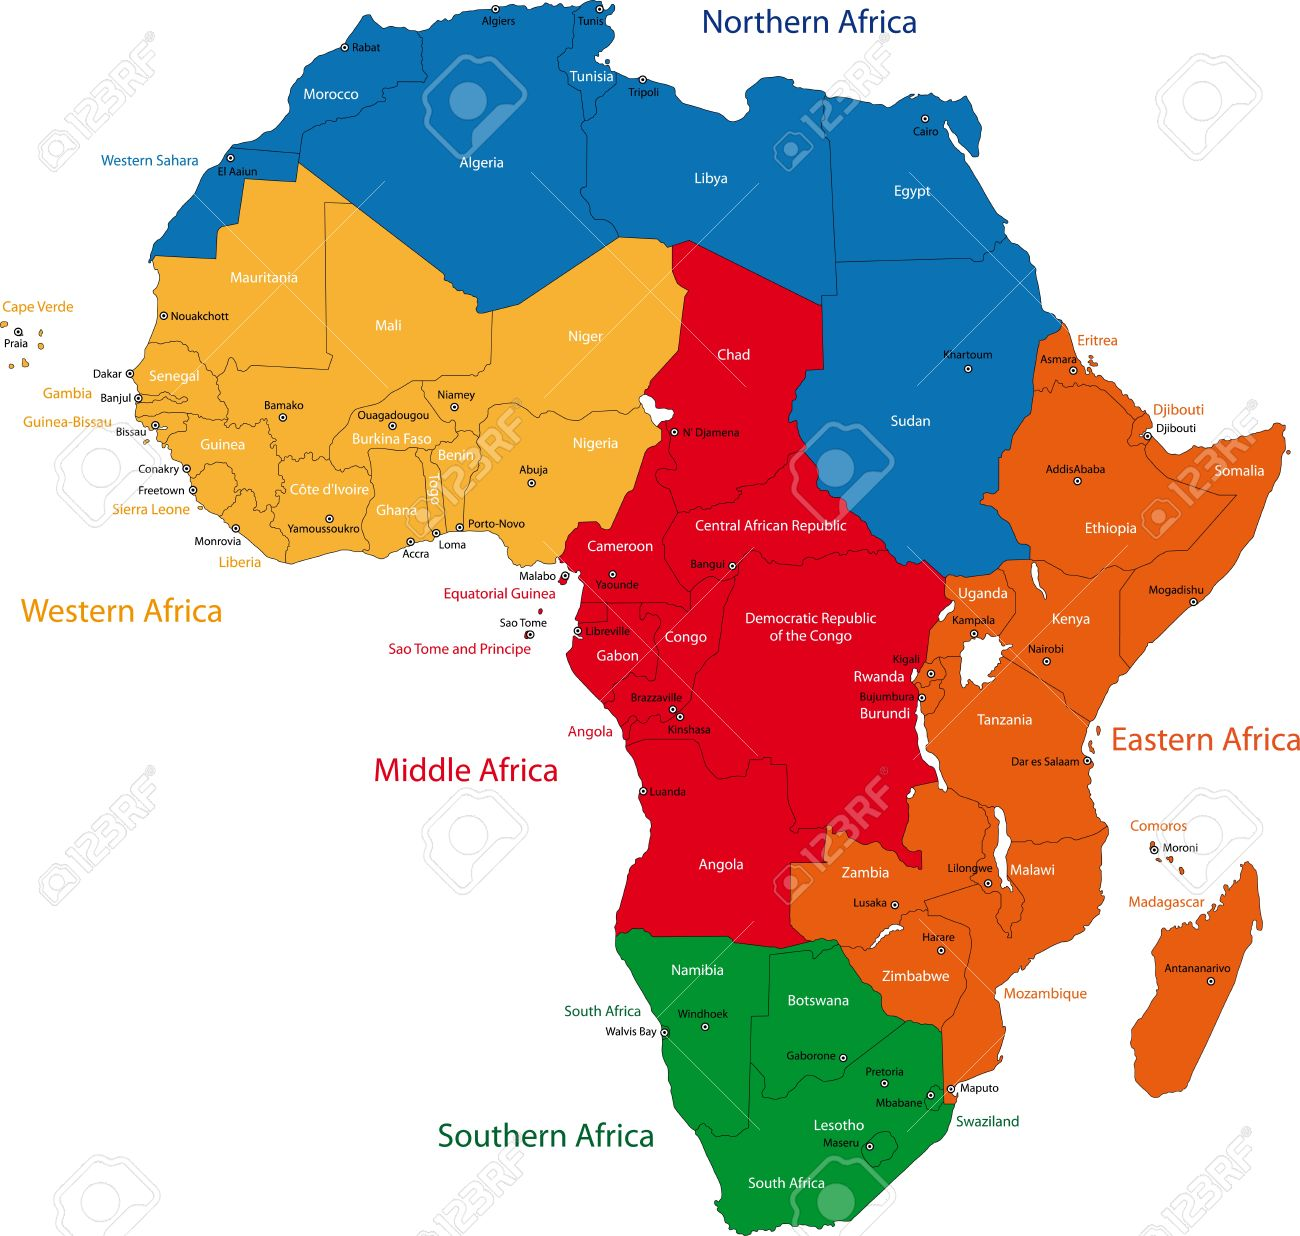 Colorful Regions Of Africa With Countries And Capital Cities - World countries and capital cities